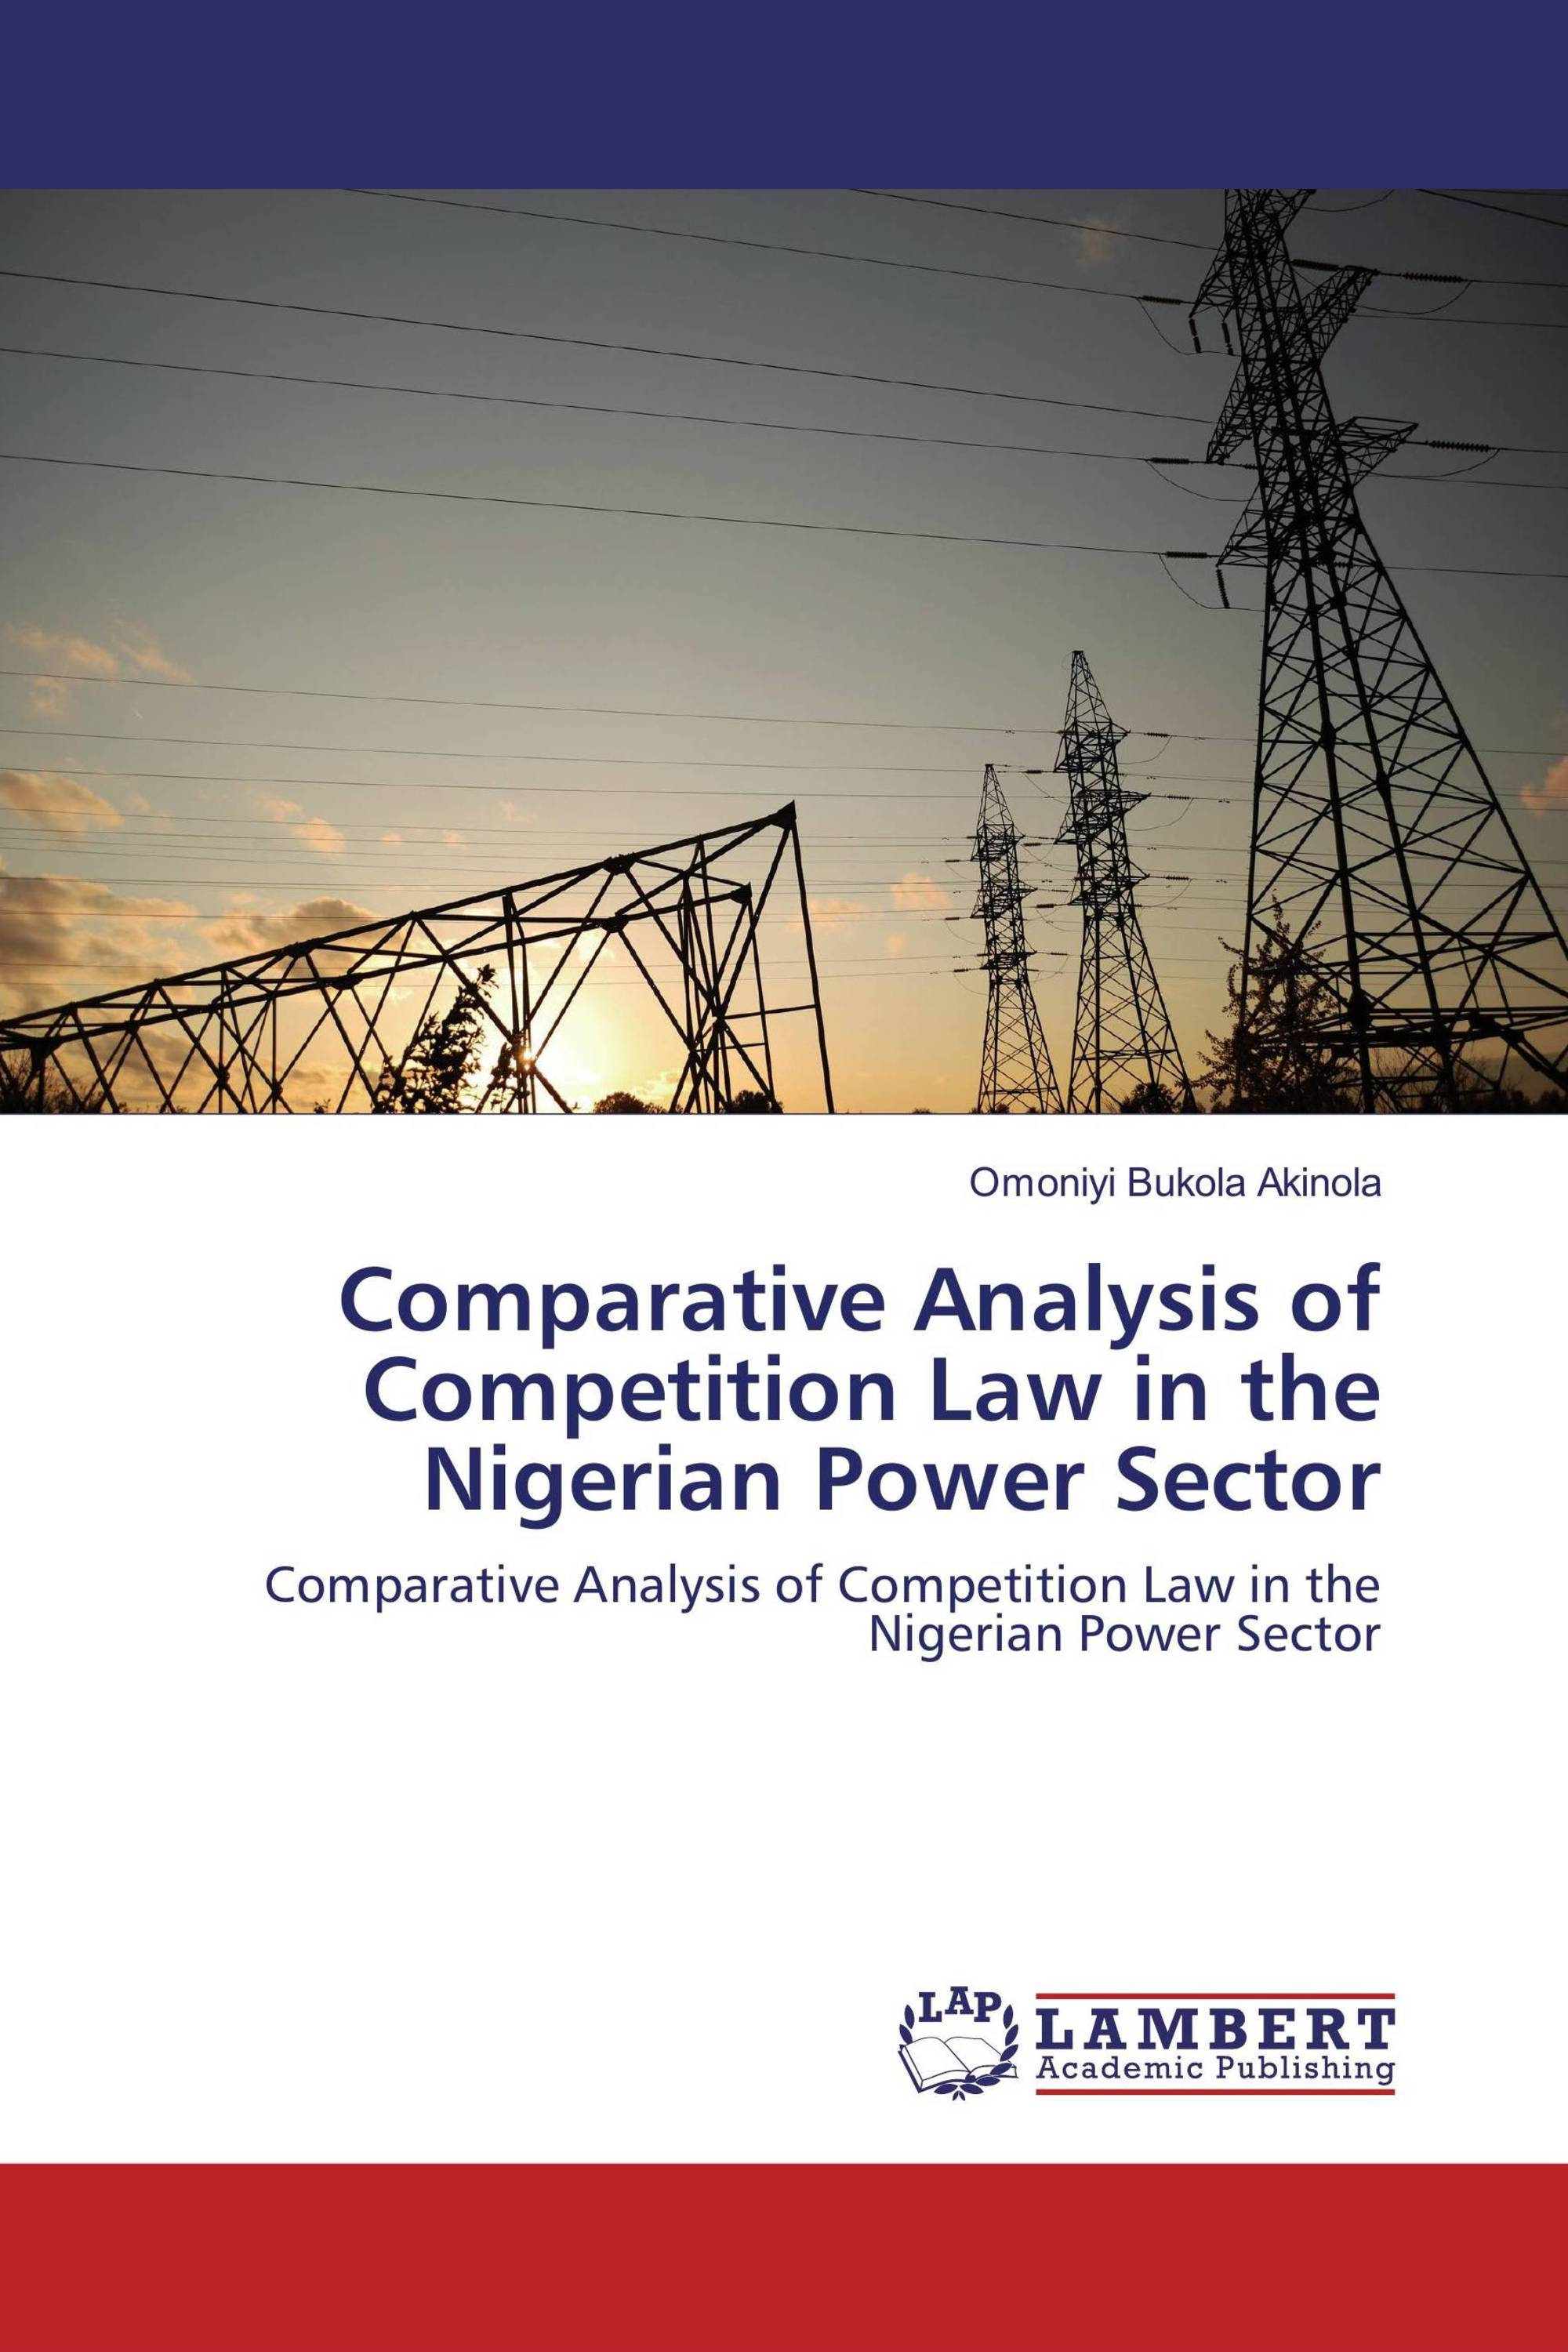 competition law in nigeria Jorind 11(1), june, 2013 issn 1596-8308 wwwtranscampusorg/journals wwwajolinfo/journals/jorind price mechanism, competition and consumer protection law in nigeria.